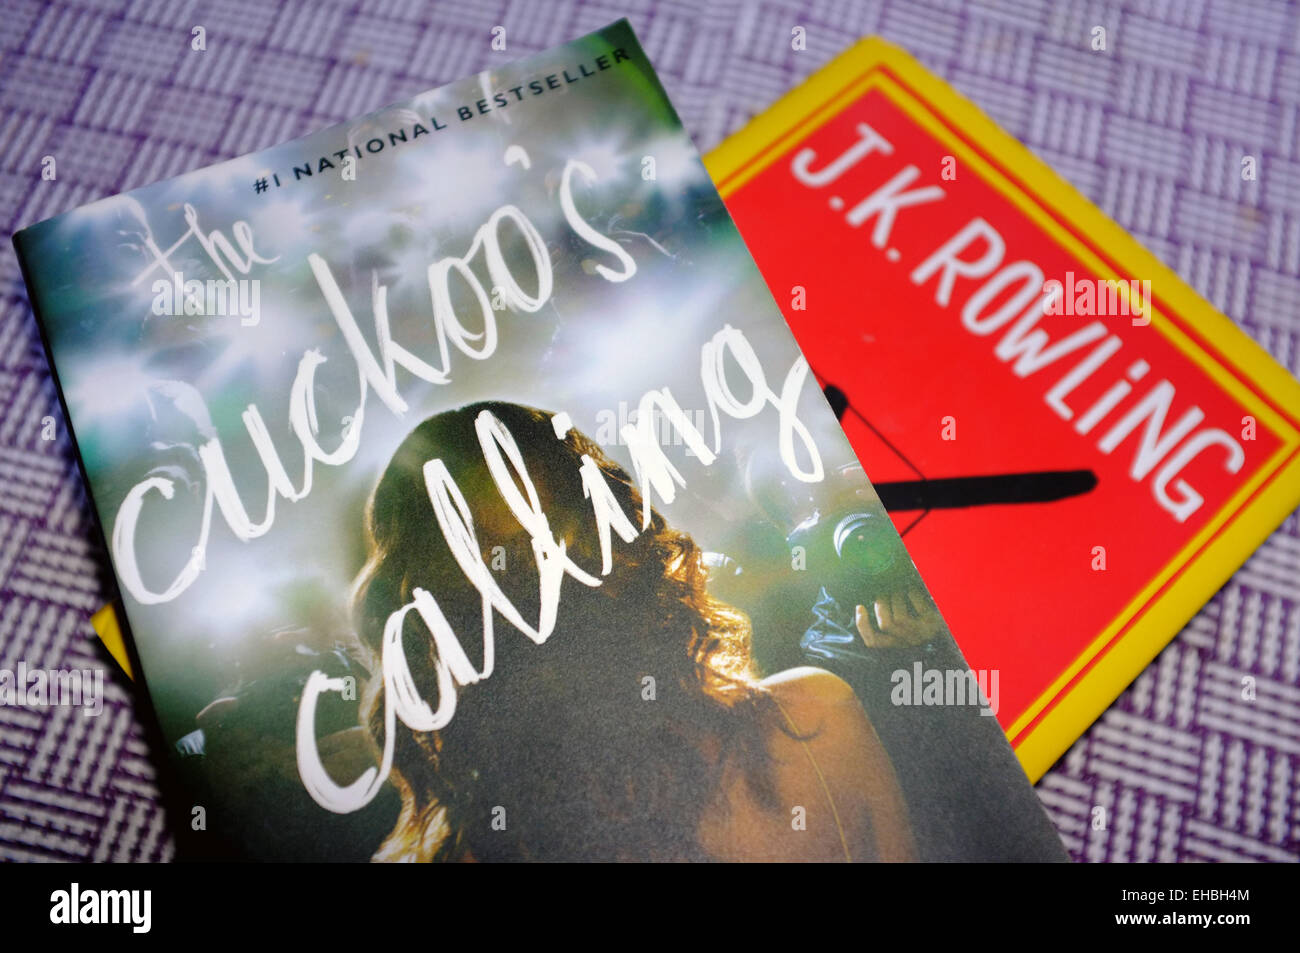 The Cuckoo's Calling and The Casual Vacancy, both books by the author JK Rowling. - Stock Image